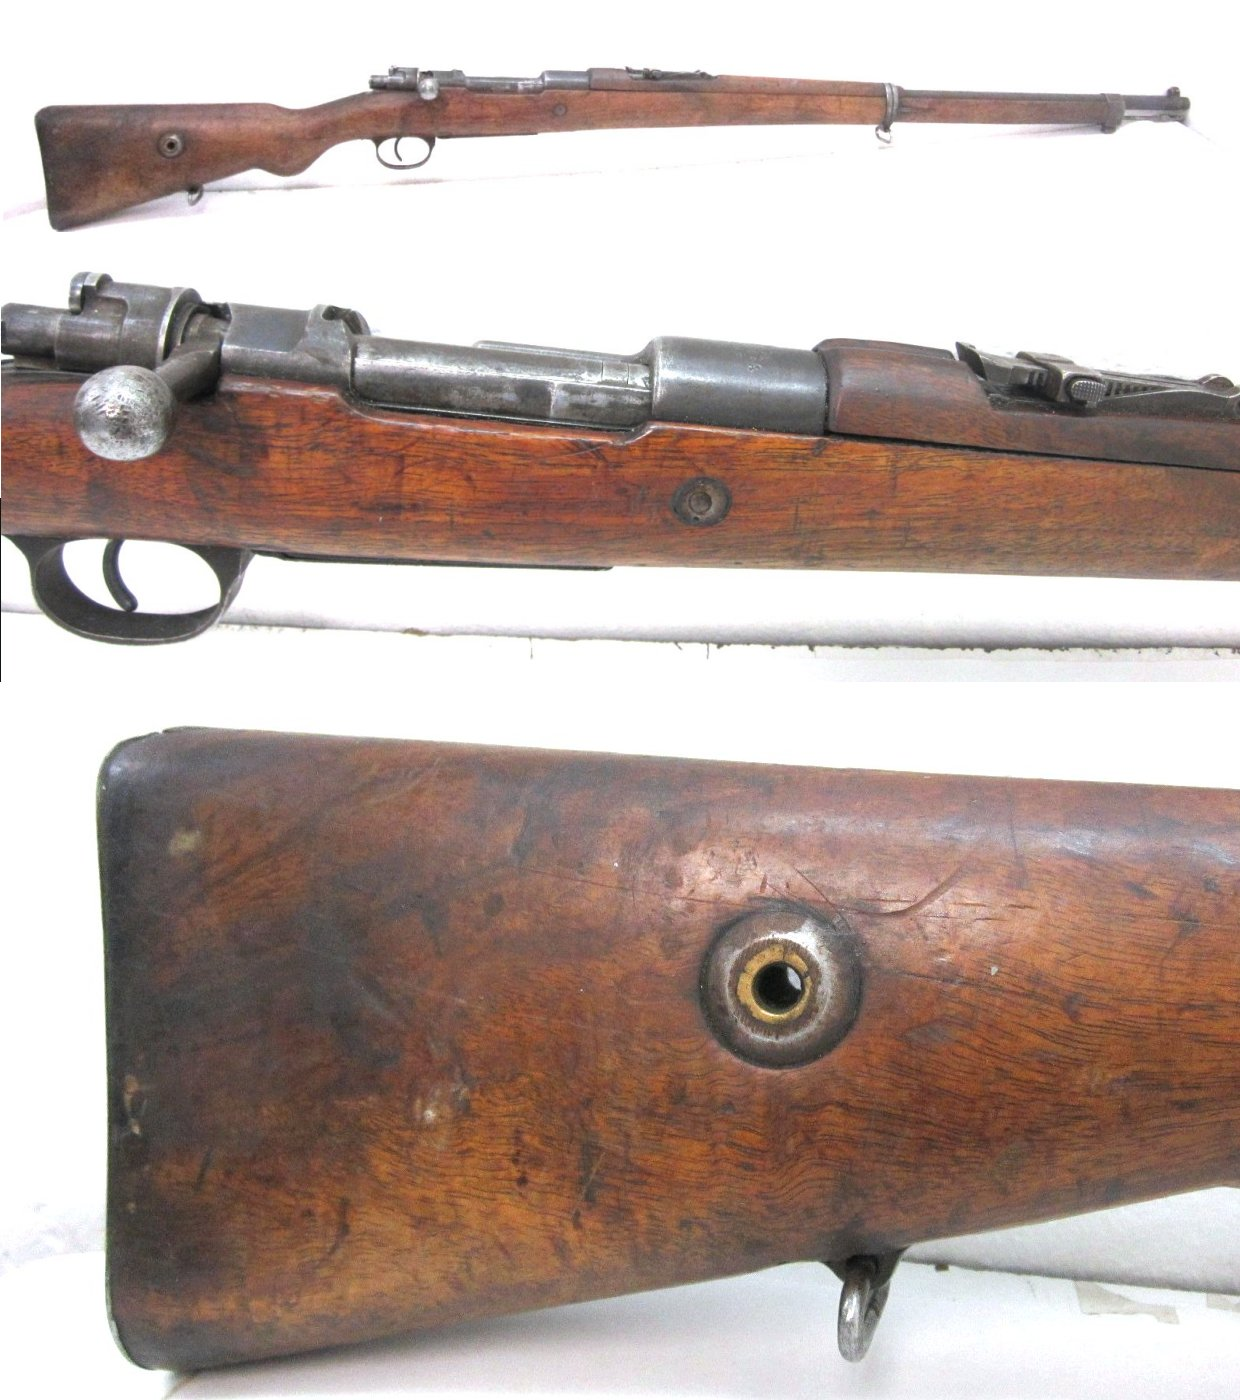 Mauser WWII? Help on Maker and Model   The Firearms Forum